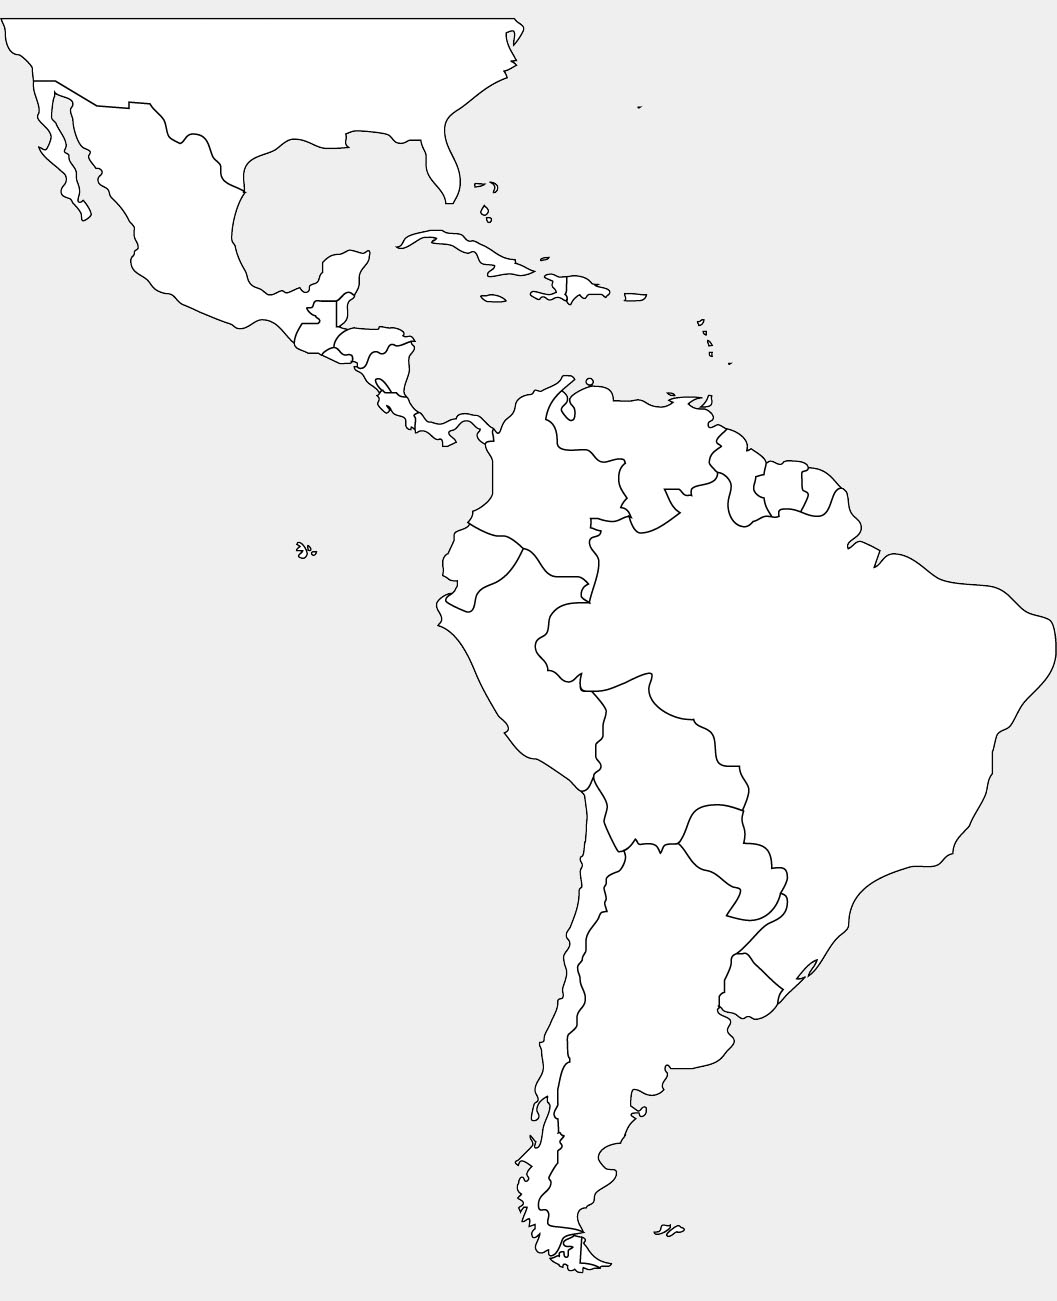 South America Map Drawing at GetDrawings.com | Free for personal use on